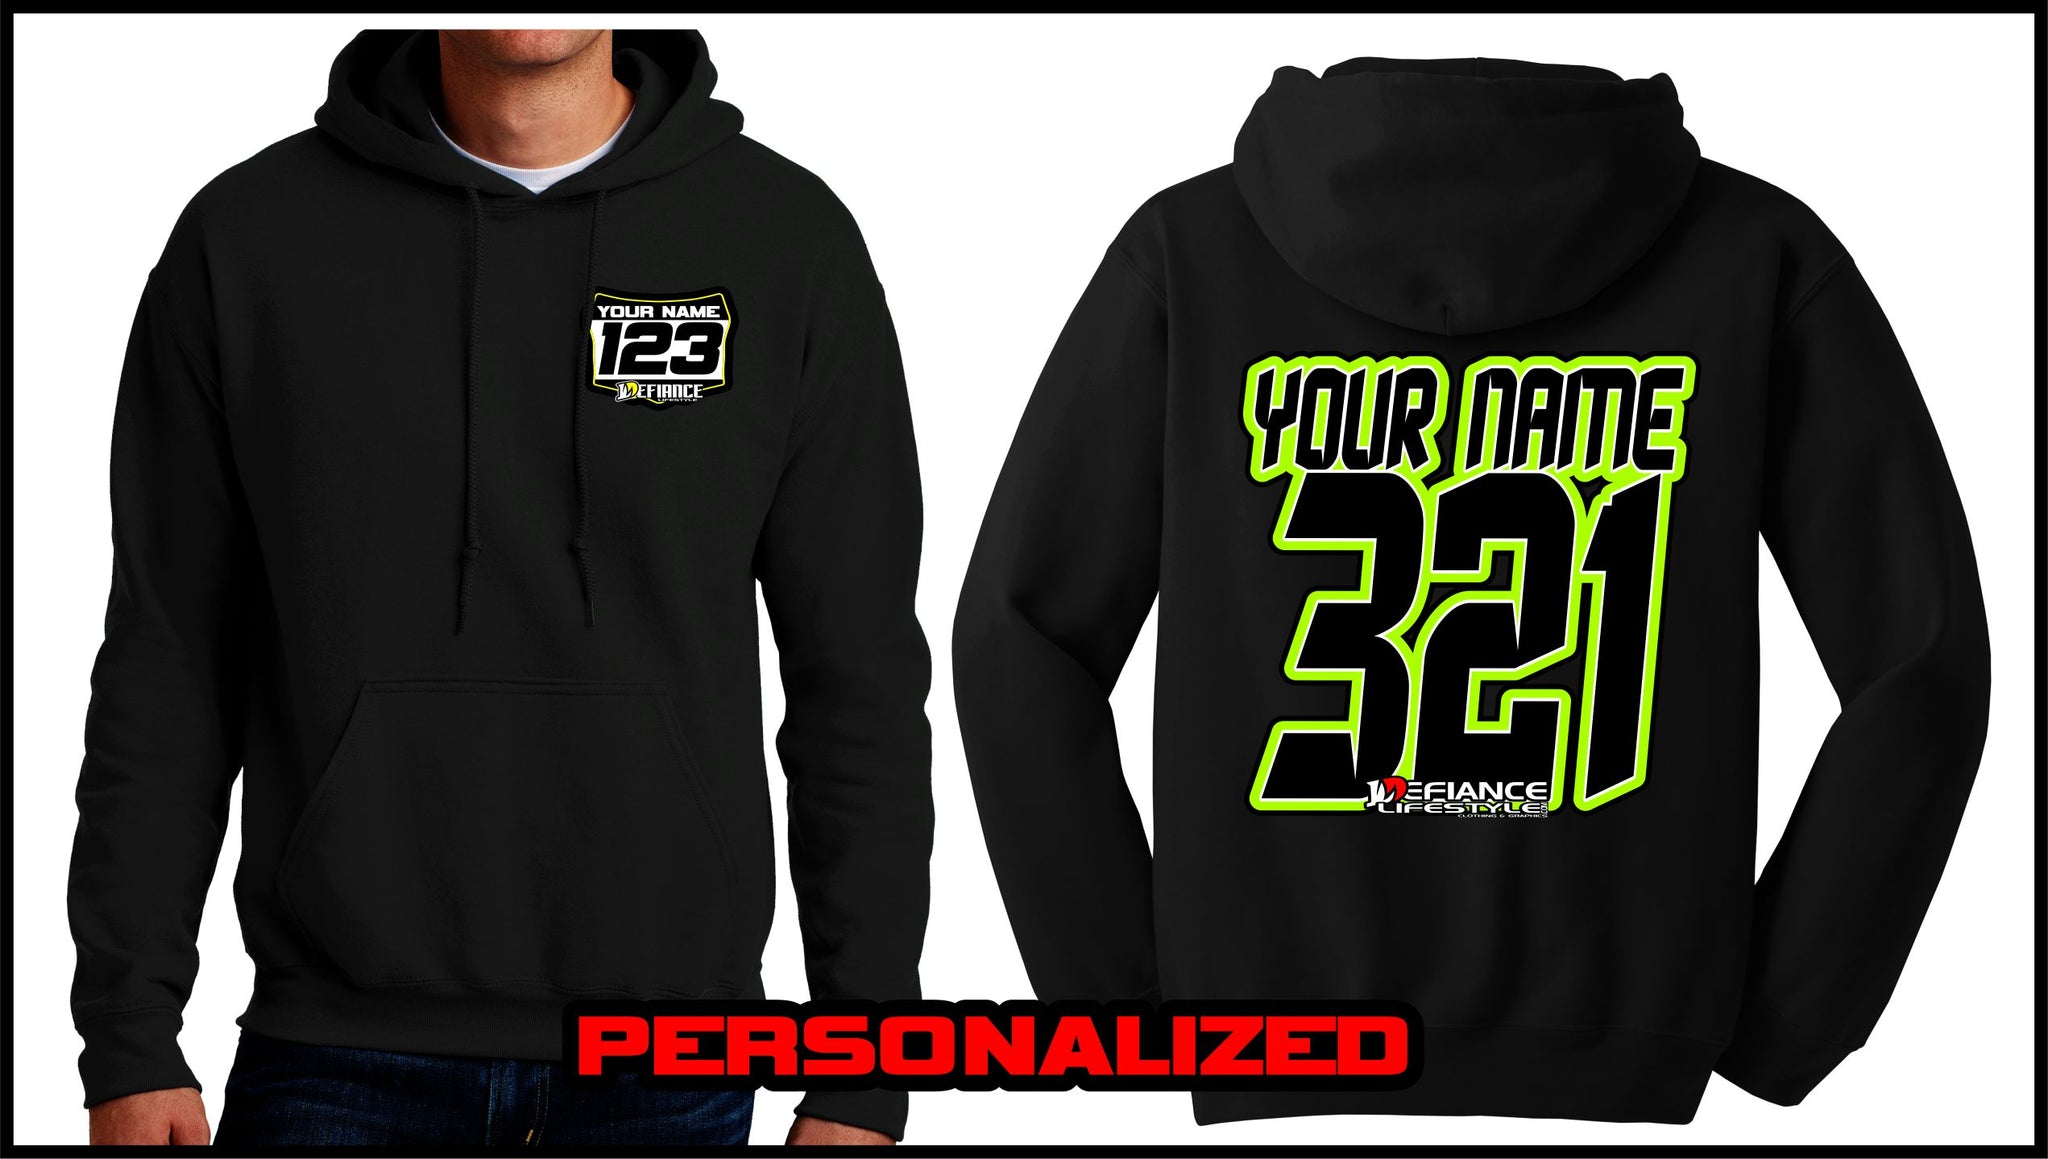 Custom Demond Sweatshirt - BLACK - Defiance Lifestyle, Race Apparel - Casual to Custom